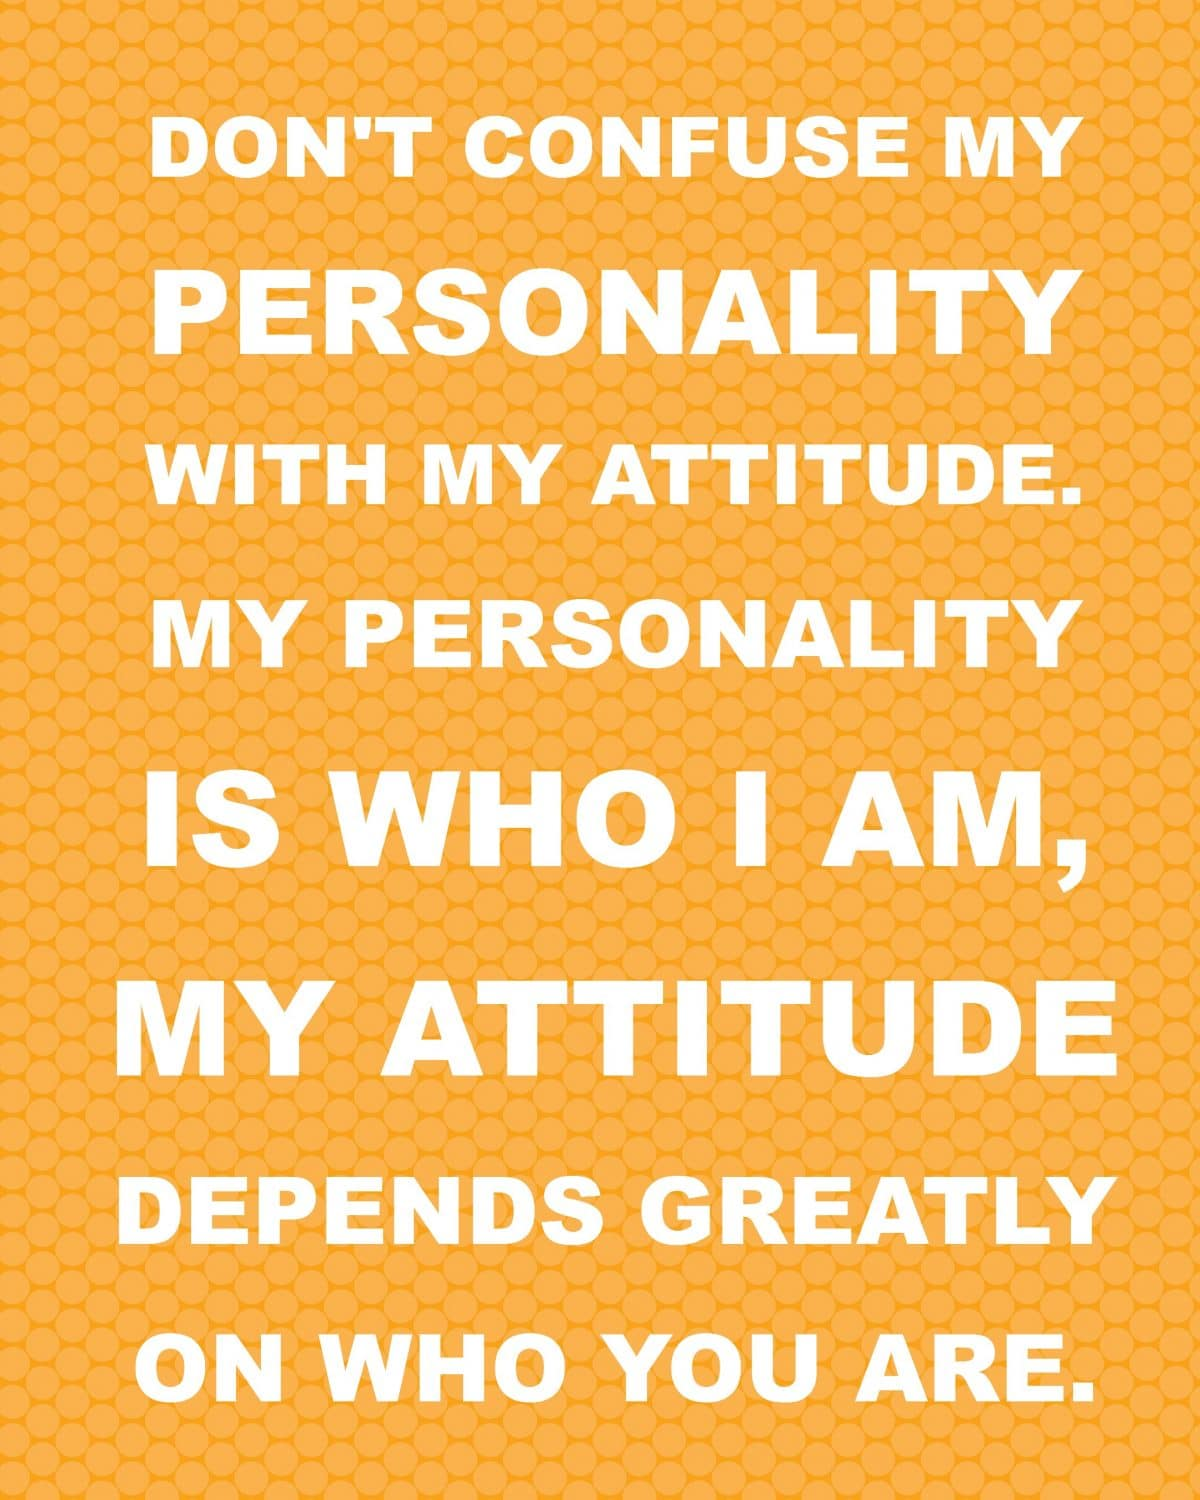 Quotes About Personality: Free Printable Quotes